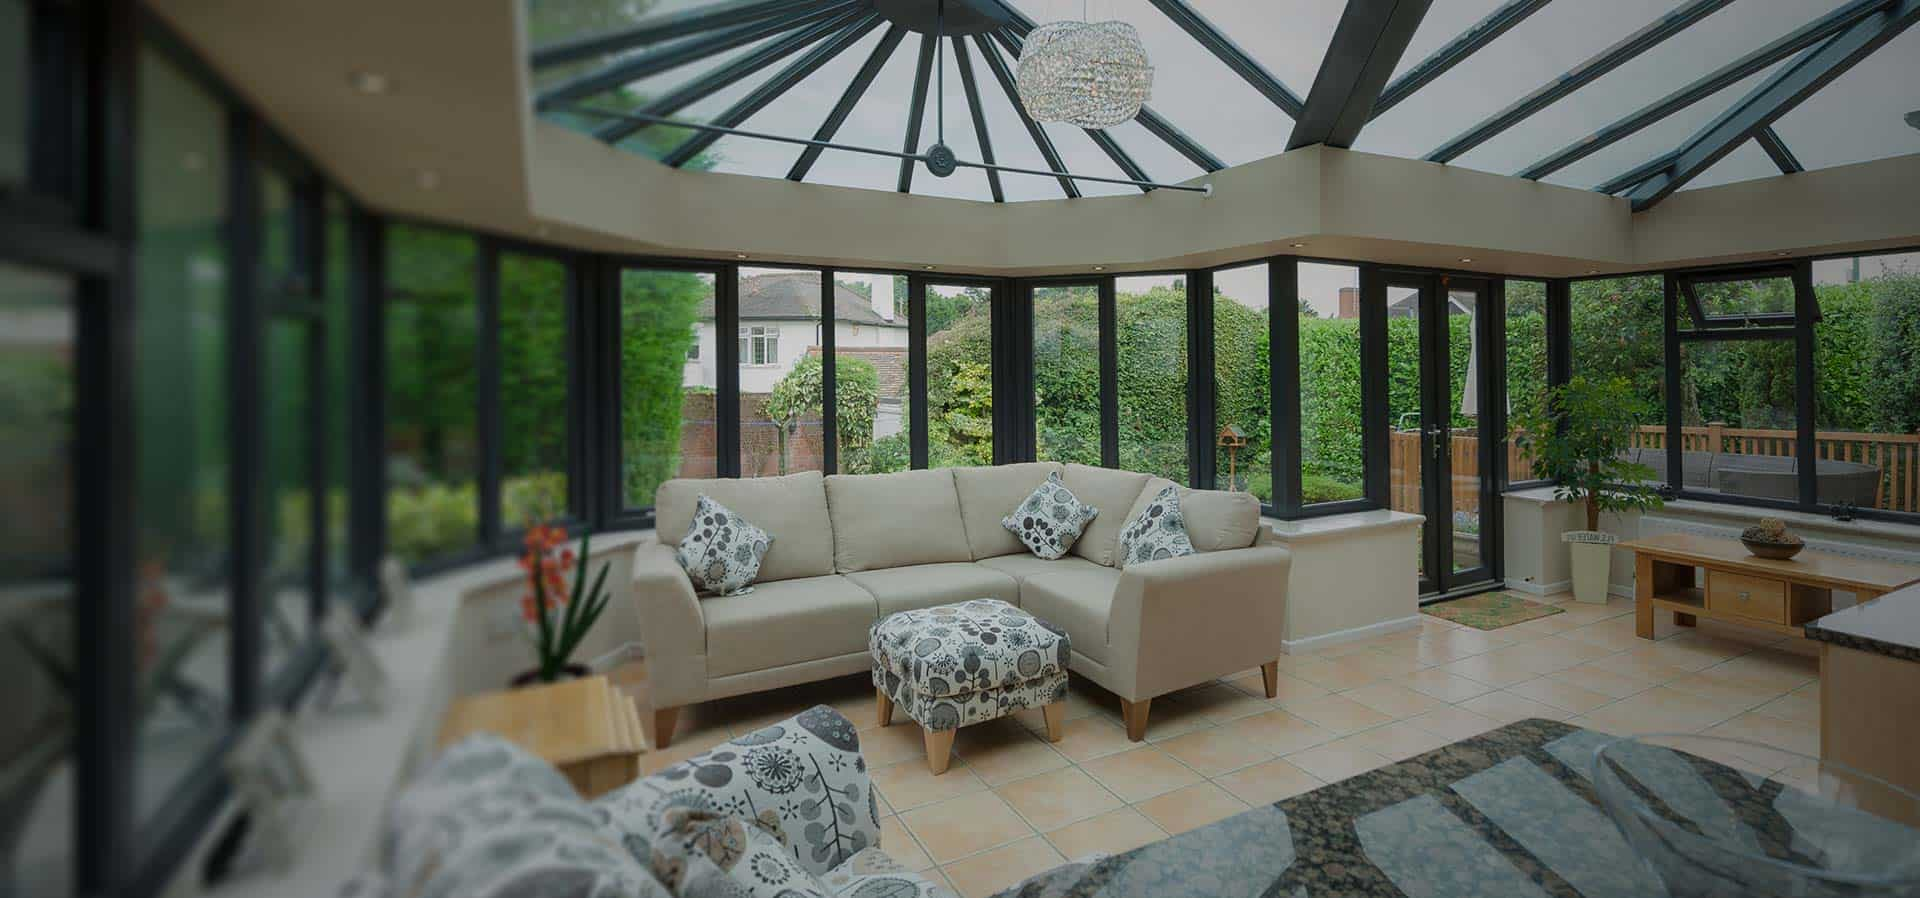 Conservatory with wall to wall windows and doors with glass roof